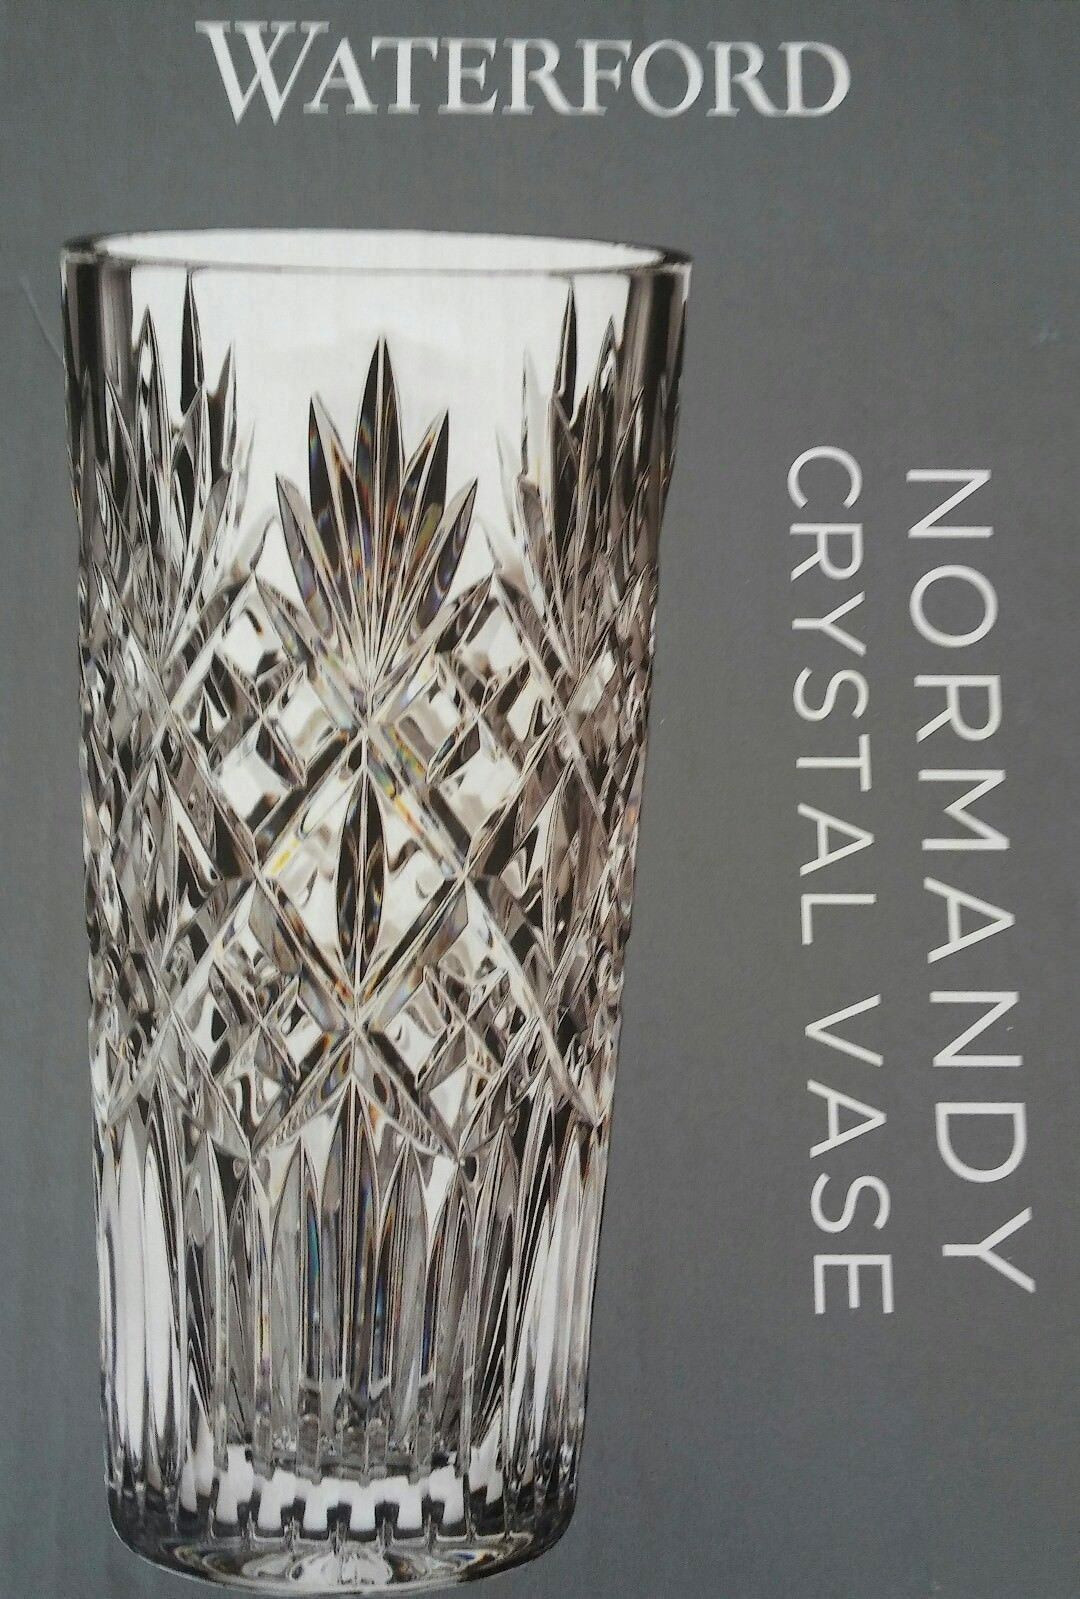 waterford crystal balmoral vase of waterford normandy vase 10 tall lead crystal 79 99 picclick intended for waterford normandy vase 10 tall lead crystal 1 of 5 see more